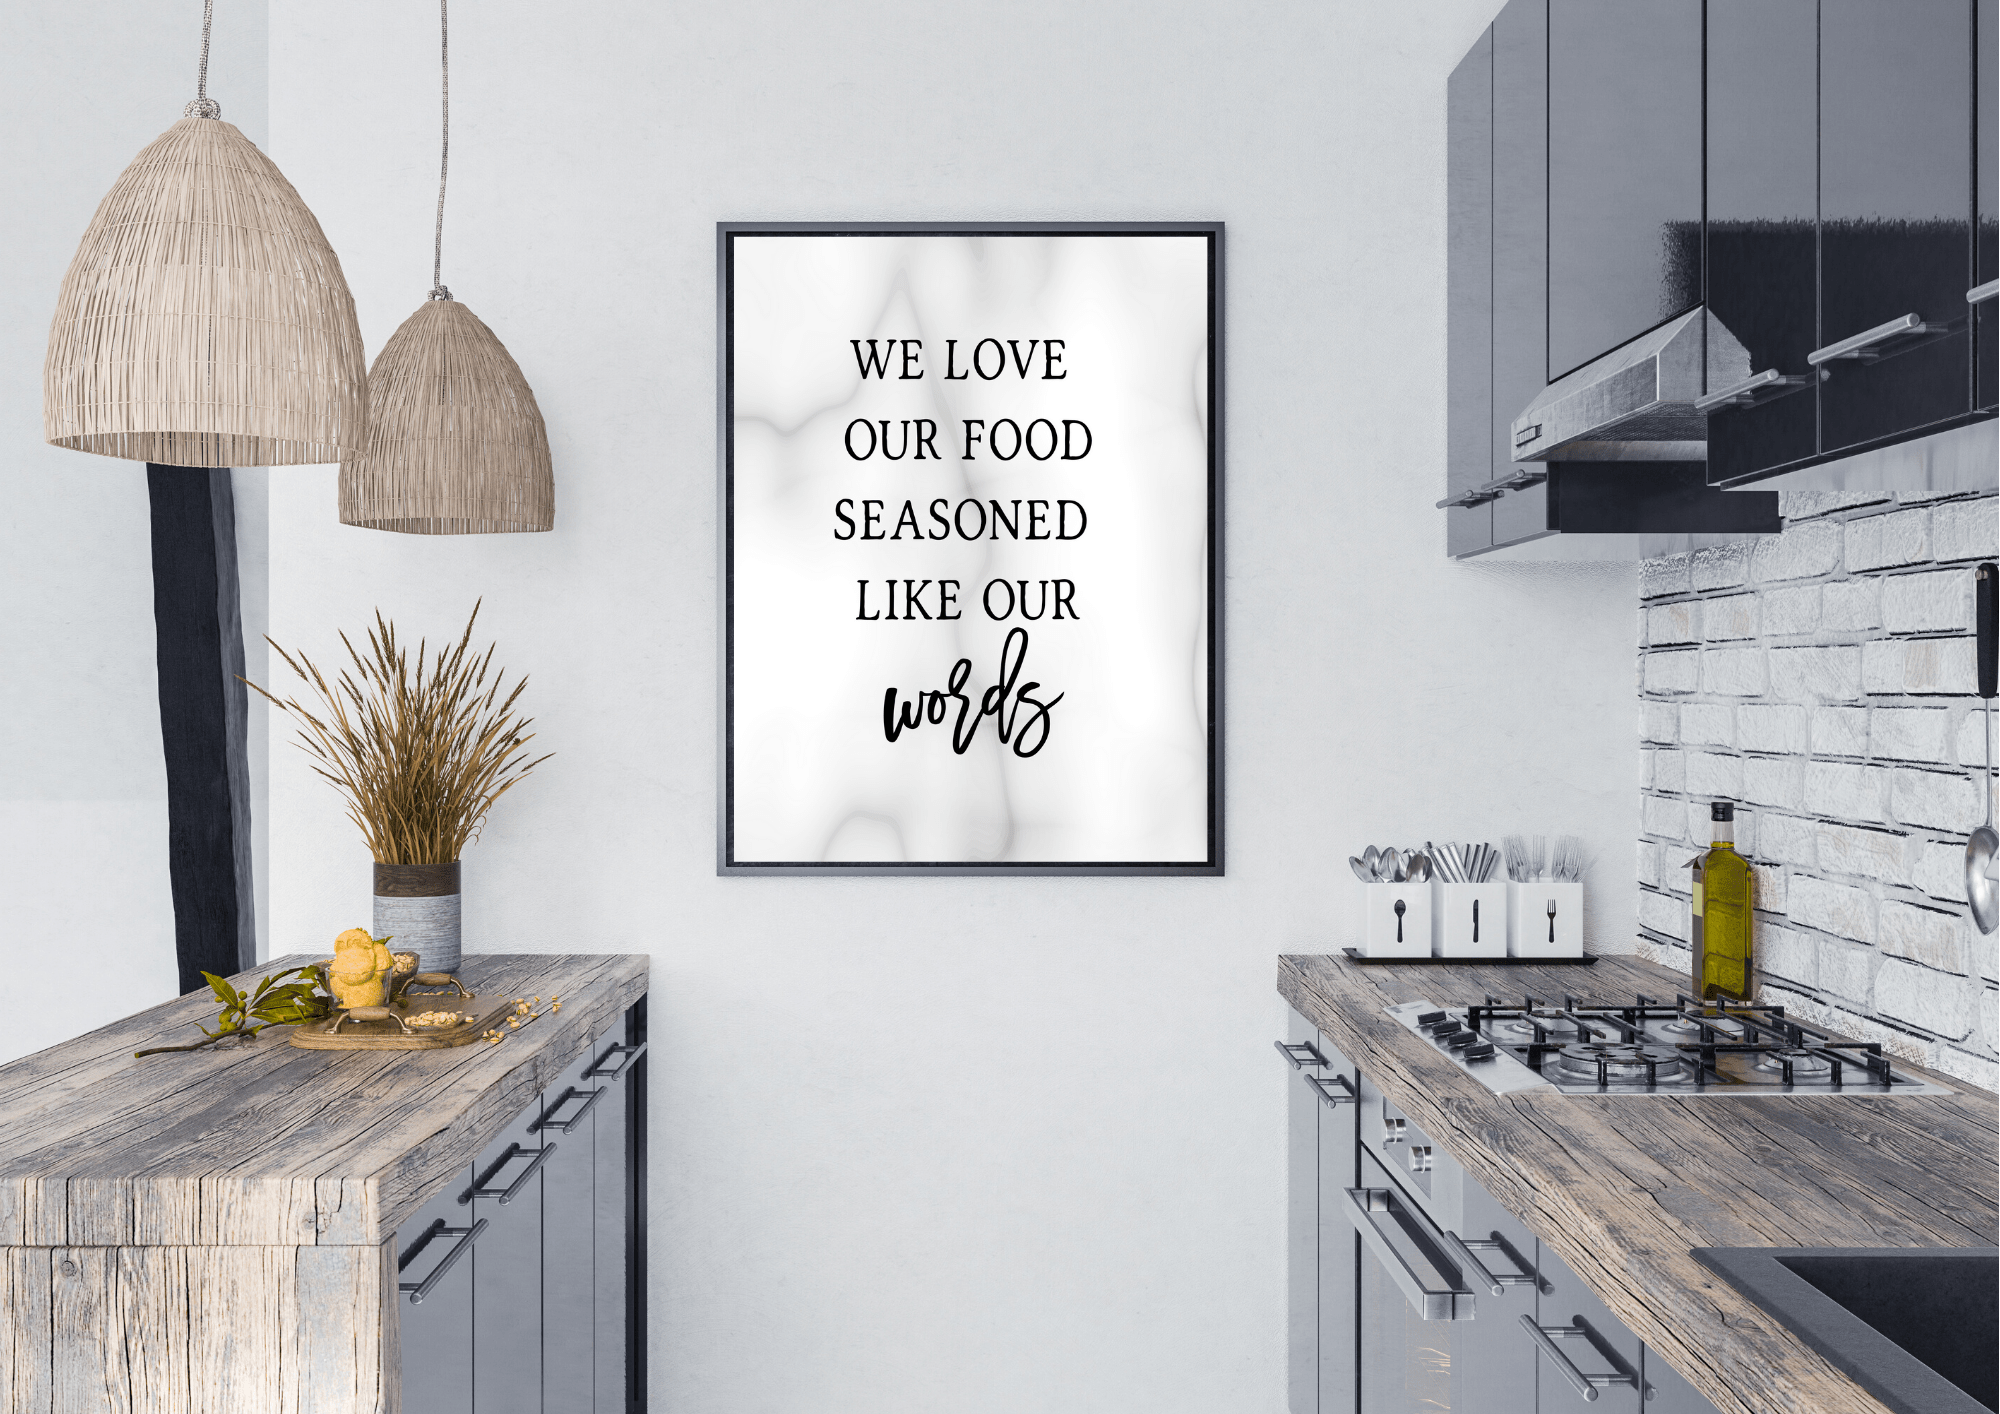 We Love our Food Seasoned Like our Words - Decor Print - Auxano Life